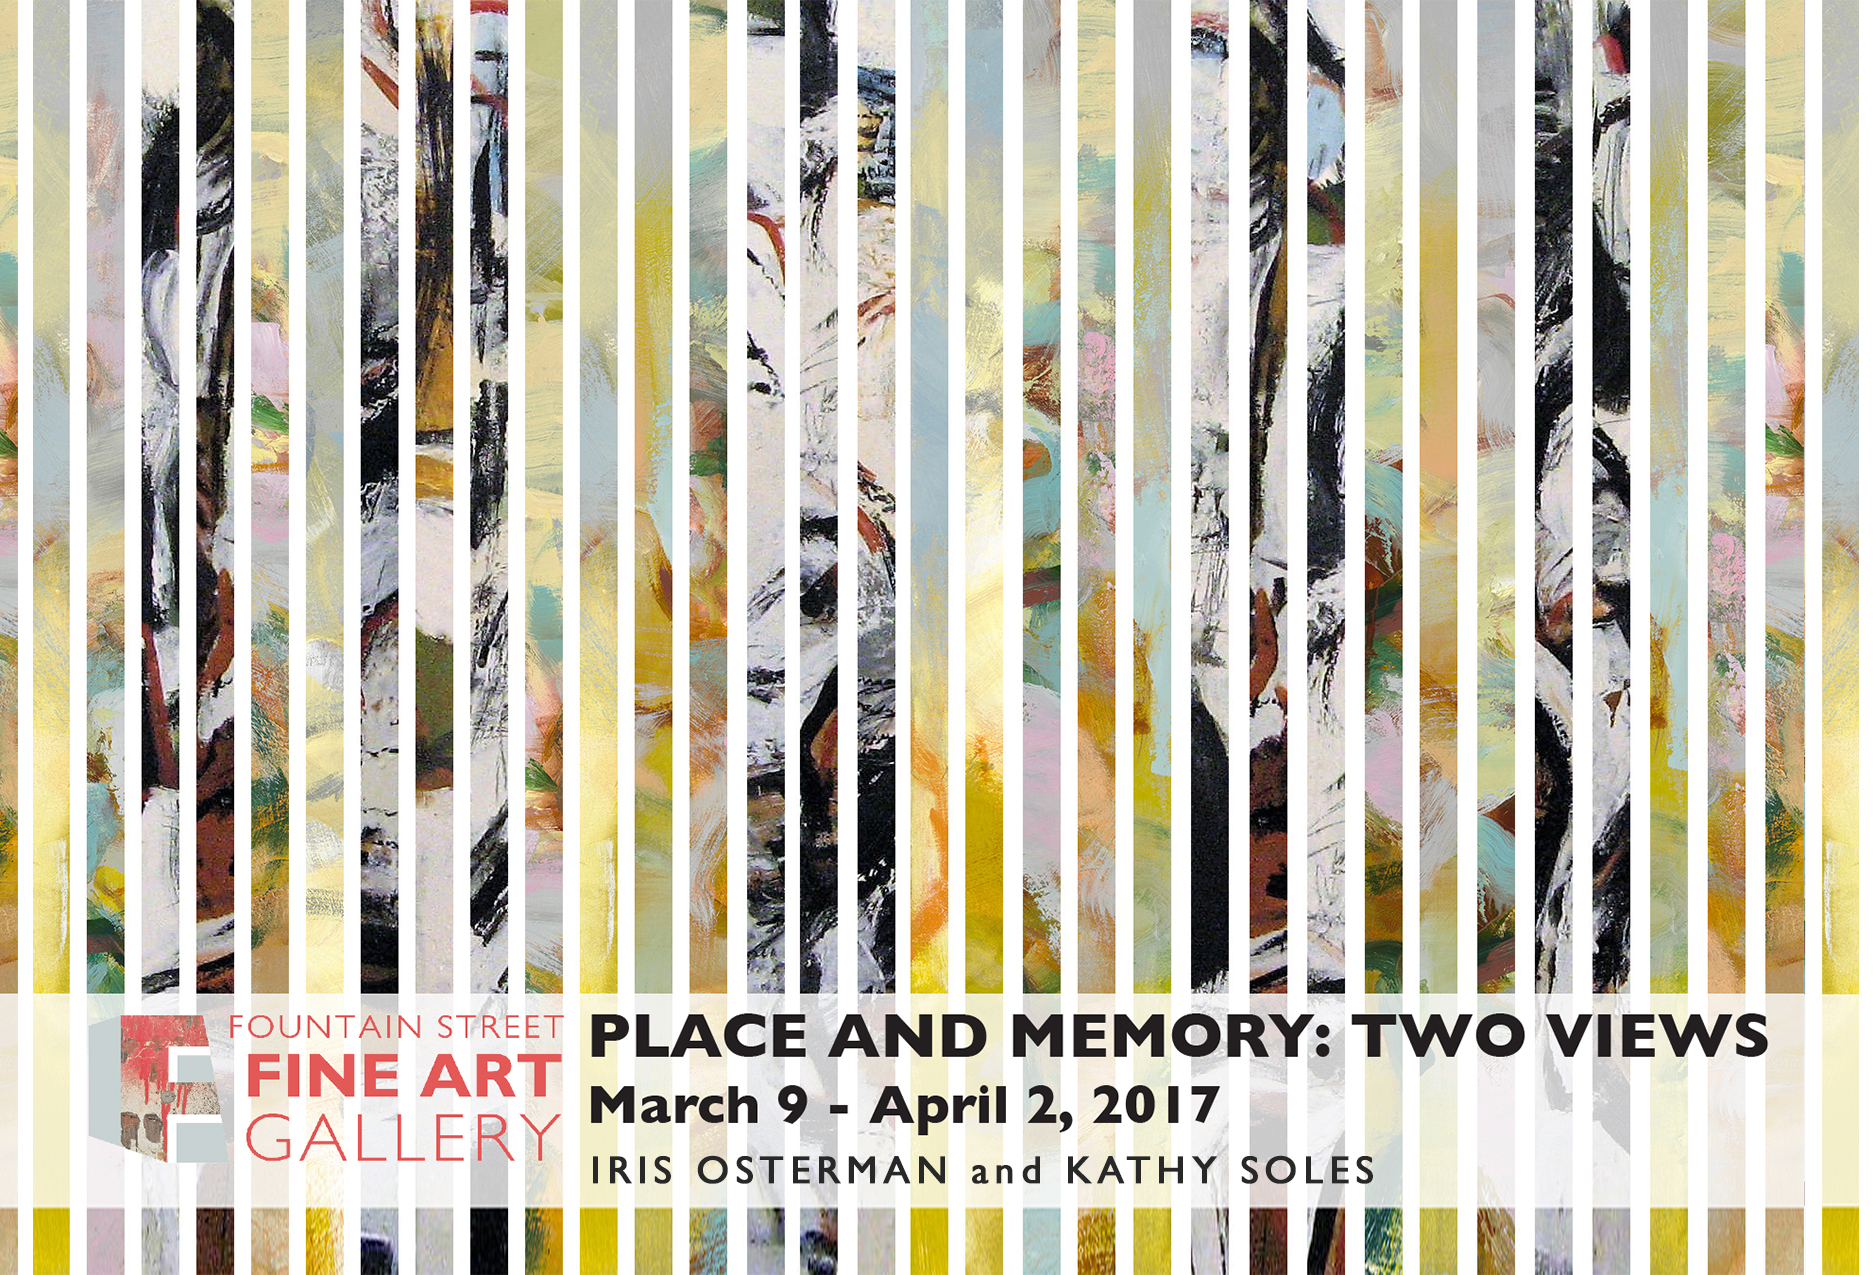 Place and Memory: Two views